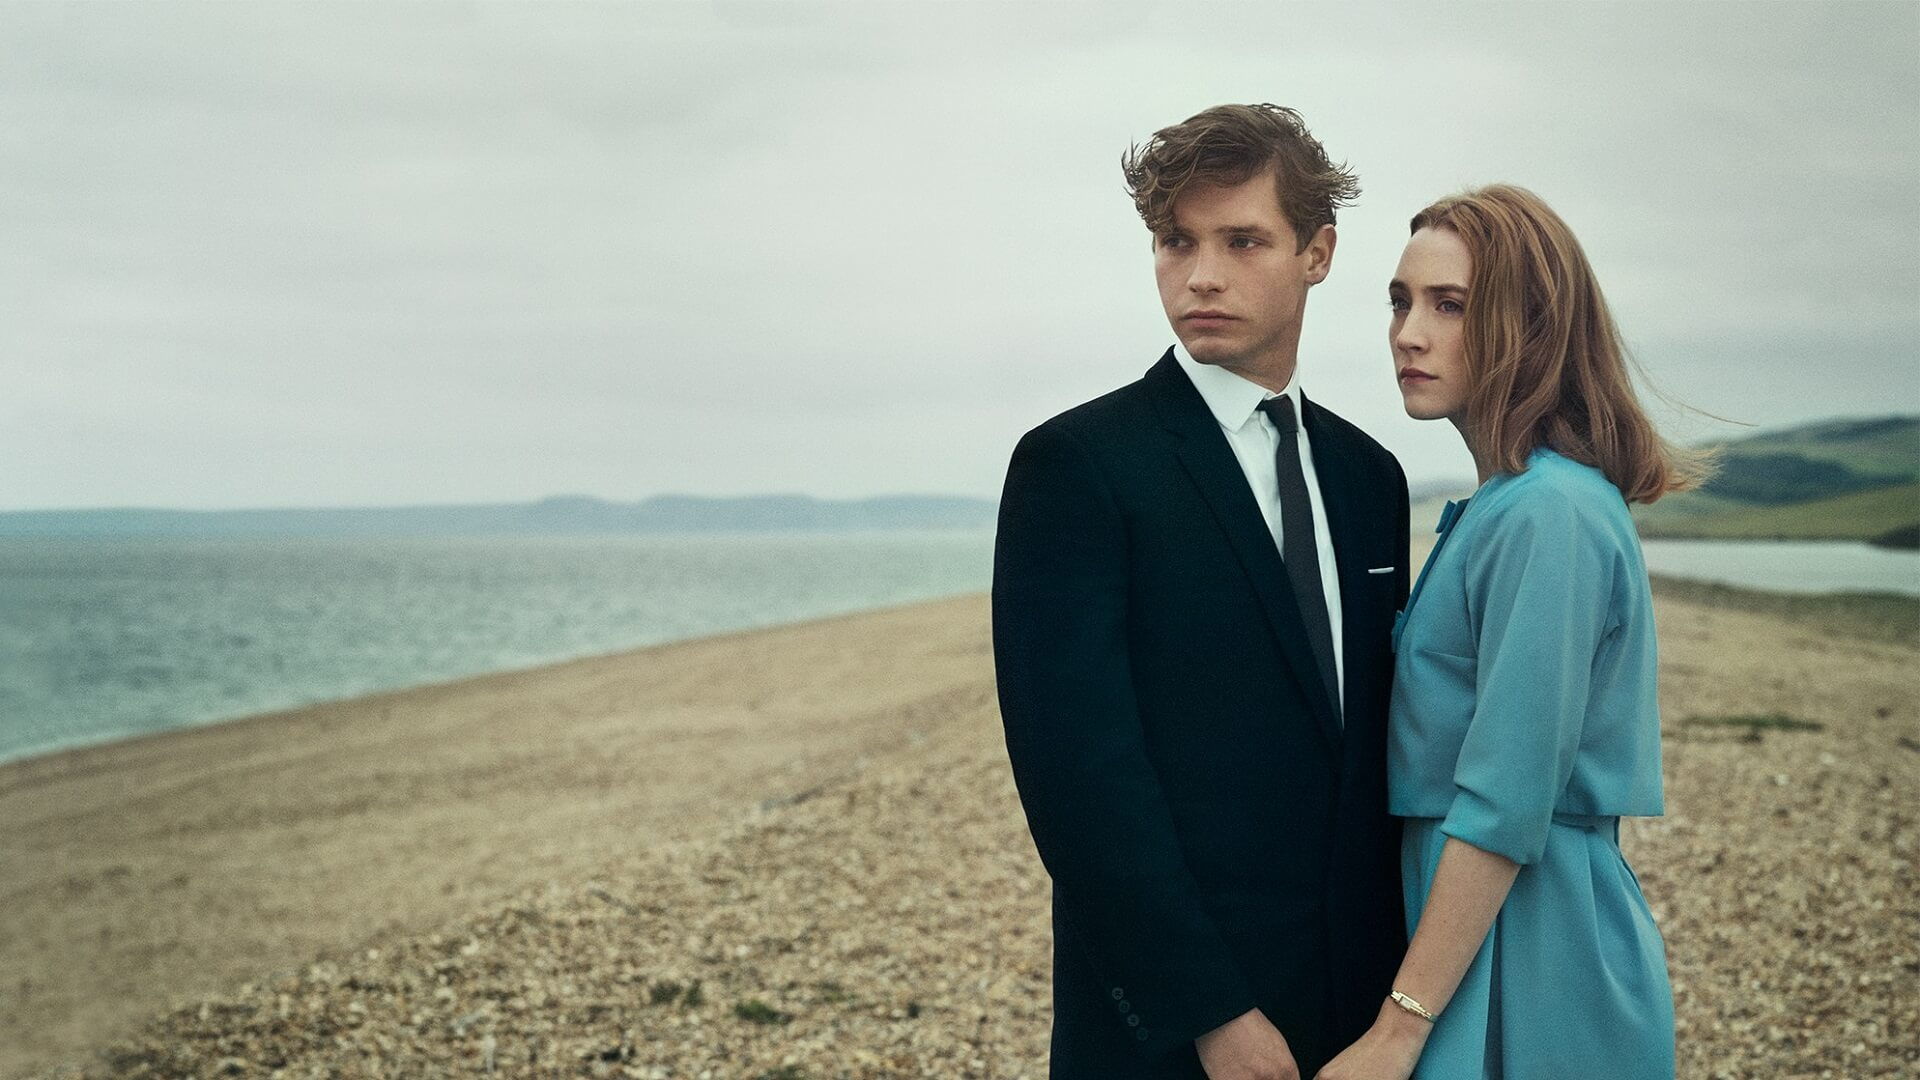 On Chesil Beach: Acclaimed Theater Director Dominic Cooke Makes His Feature Film Directorial Debut with this Ian McEwan Adaptation